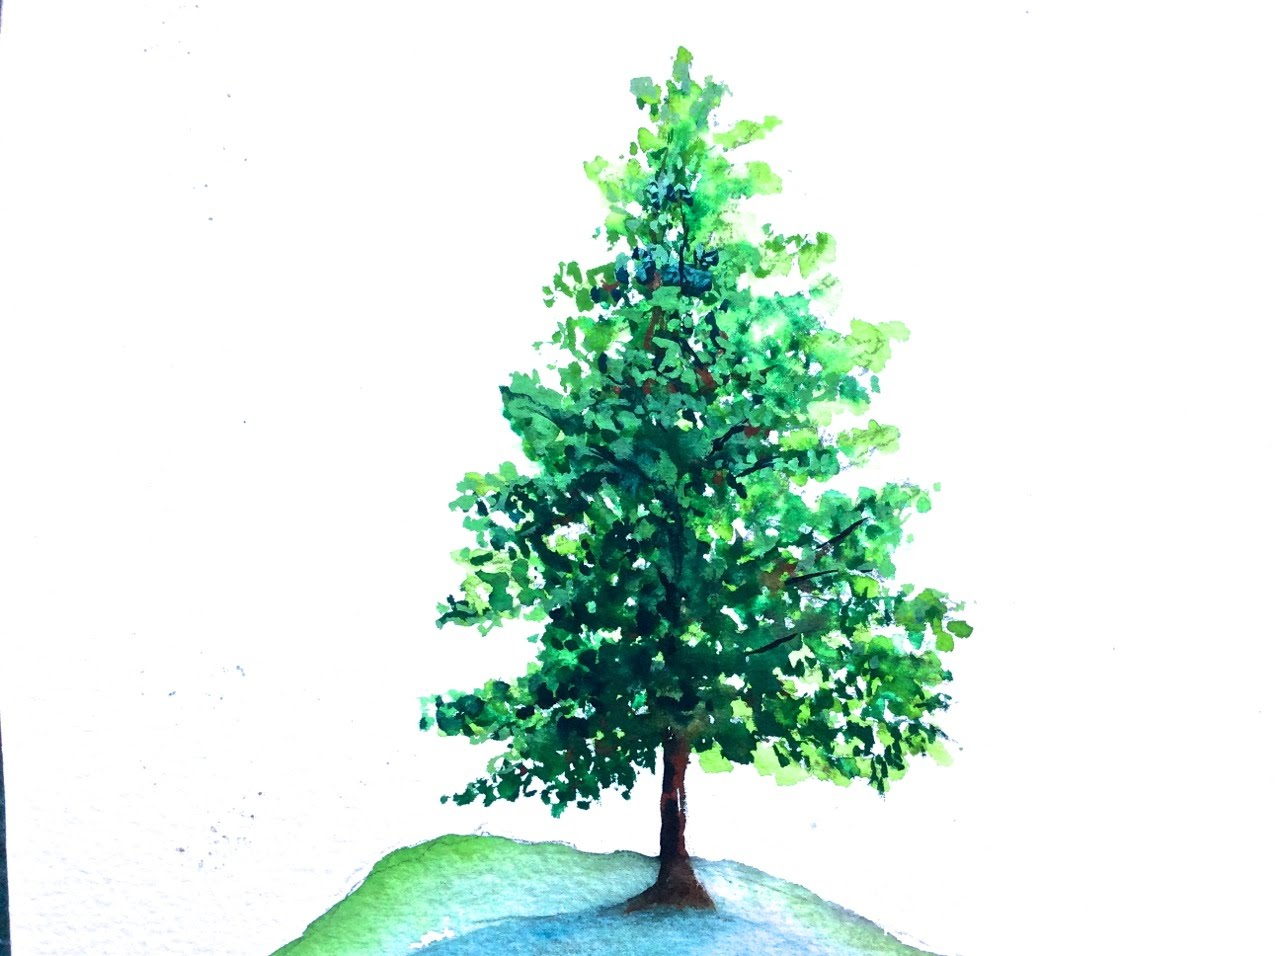 1280x956 Pine Tree Watercolor Tutorial For Beginners, How To Paint Step By